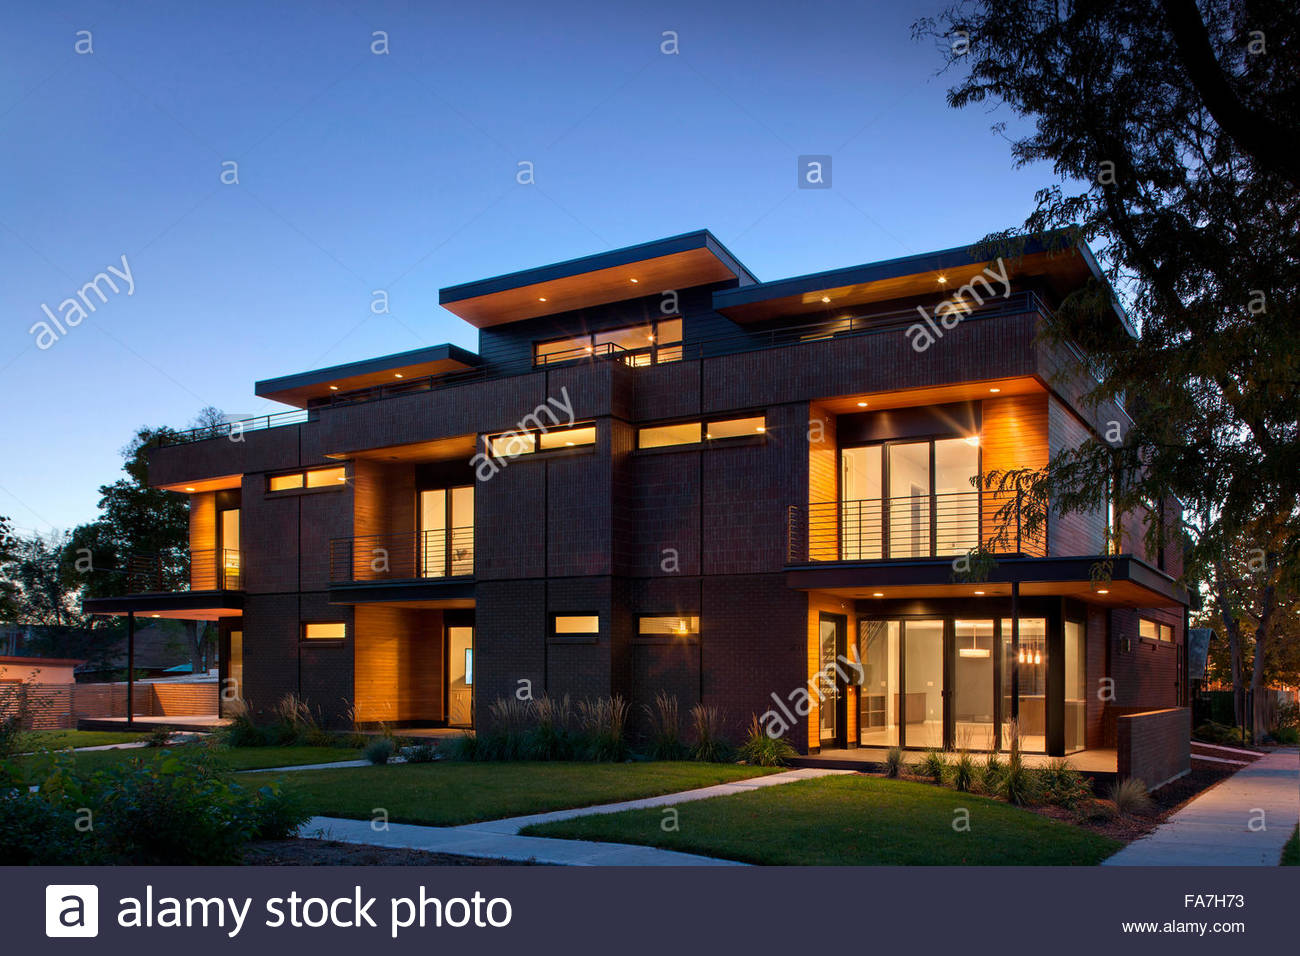 Modern red brick apartment building at dusk, Marion house designed by Sexton Lawton. - Stock Image